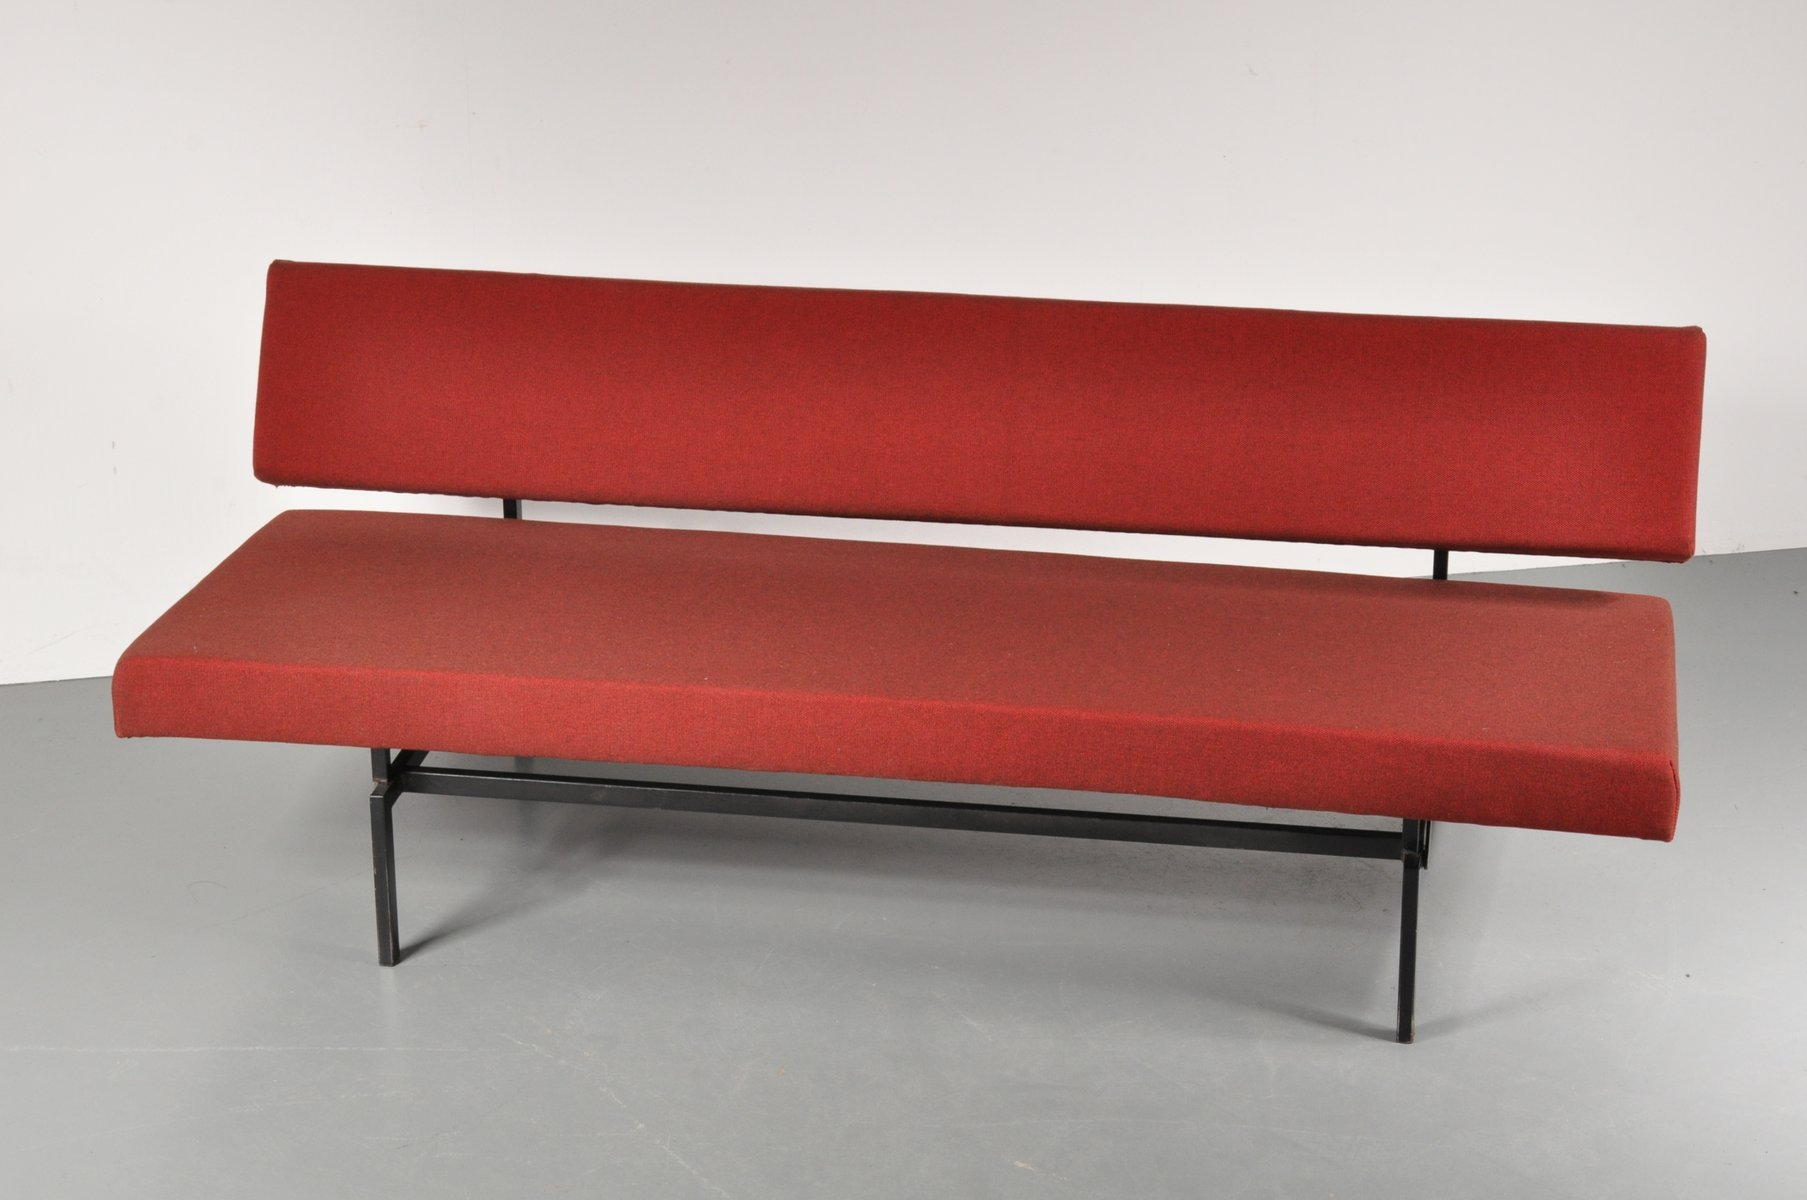 Gispen Sofa Dutch Sleeping Sofa By Gijs Van Der Sluis For Gispen